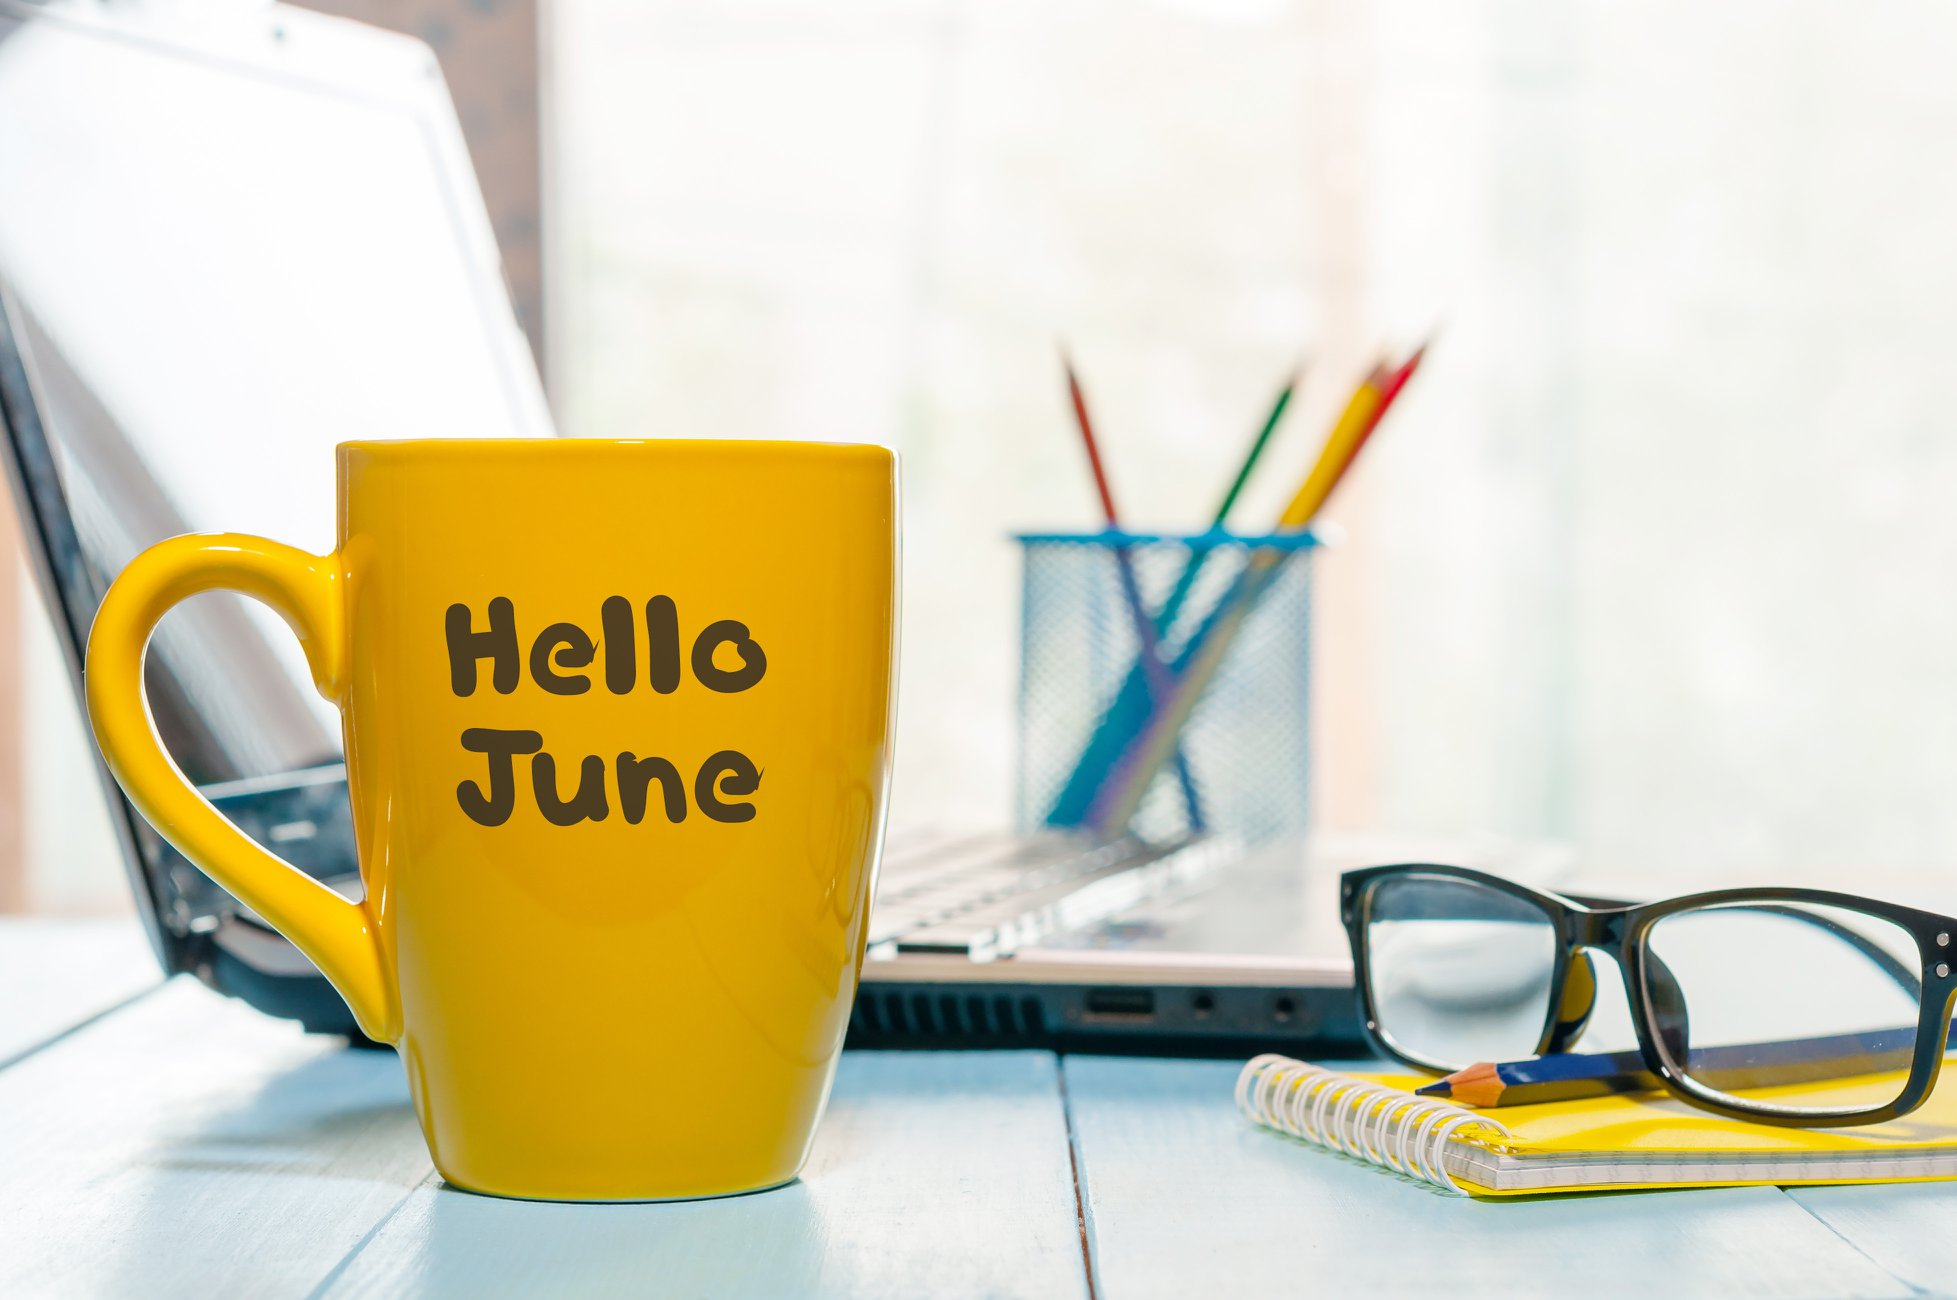 Hello June What plans do you have for us